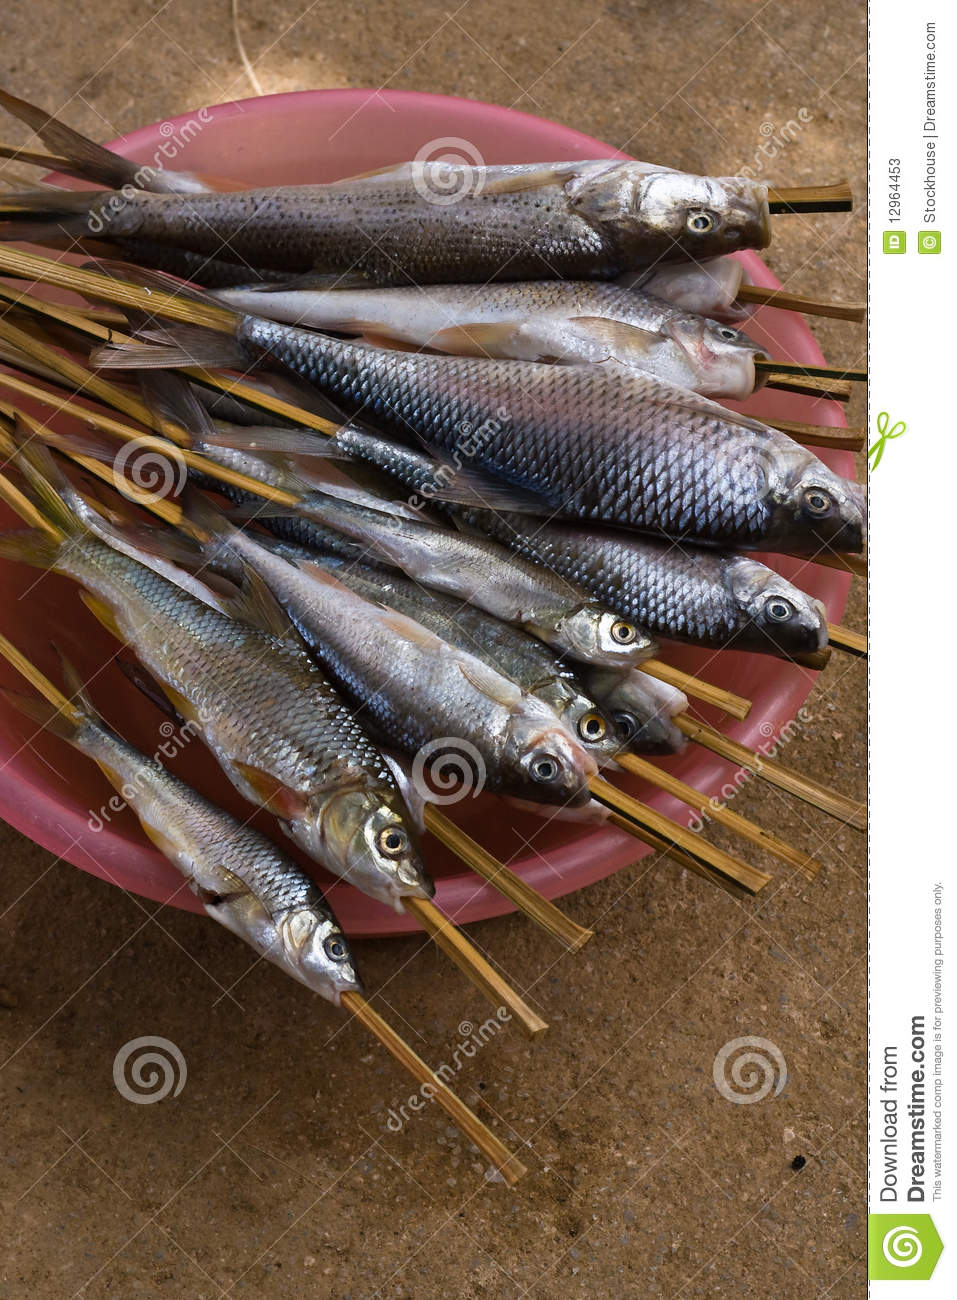 Barbecued fish on stick stock photos image 12964453 for Fish on a stick